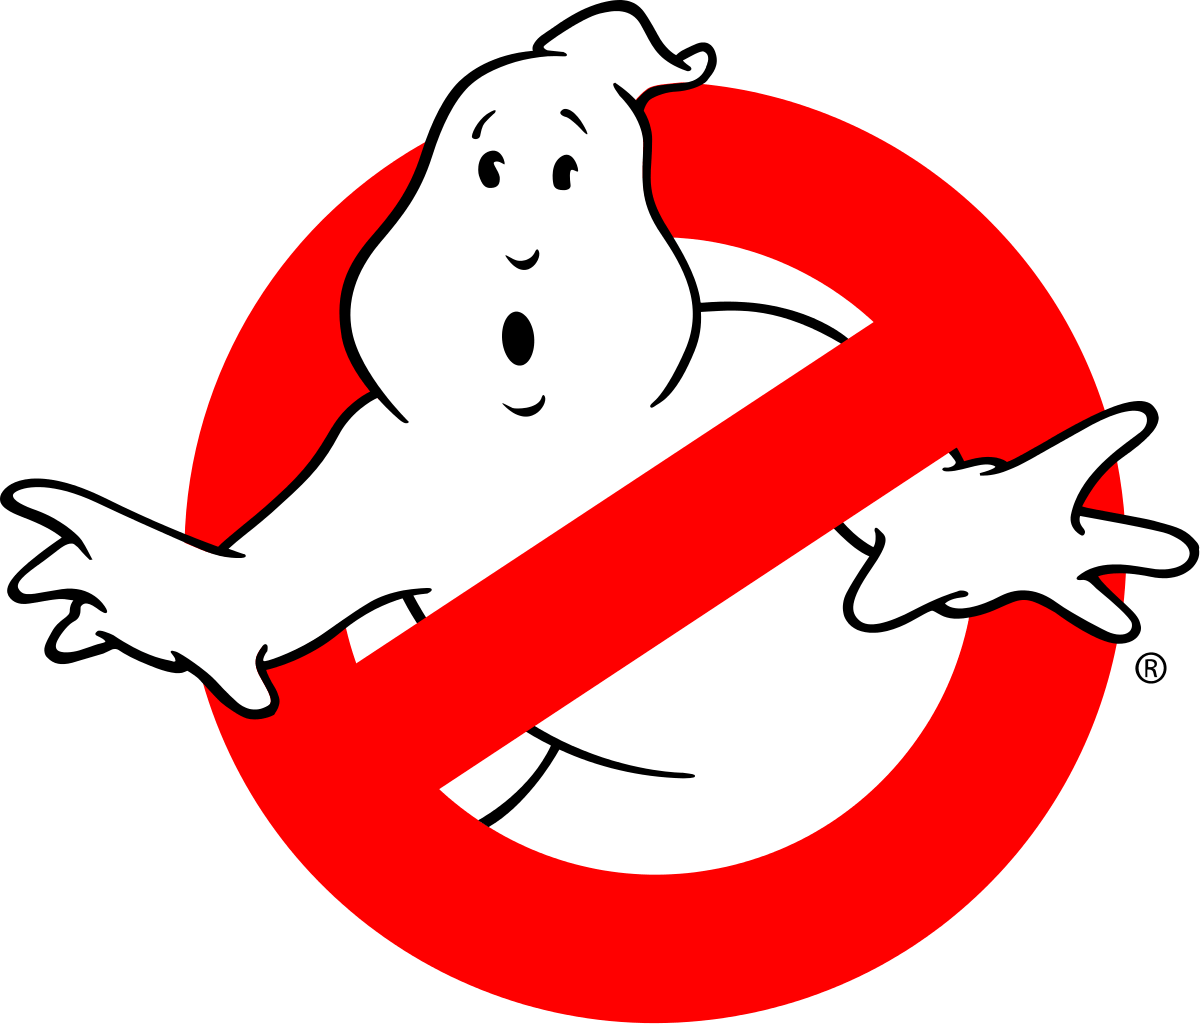 Ghostbusters car clipart graphic royalty free Ghostbusters Logo transparent PNG - StickPNG graphic royalty free